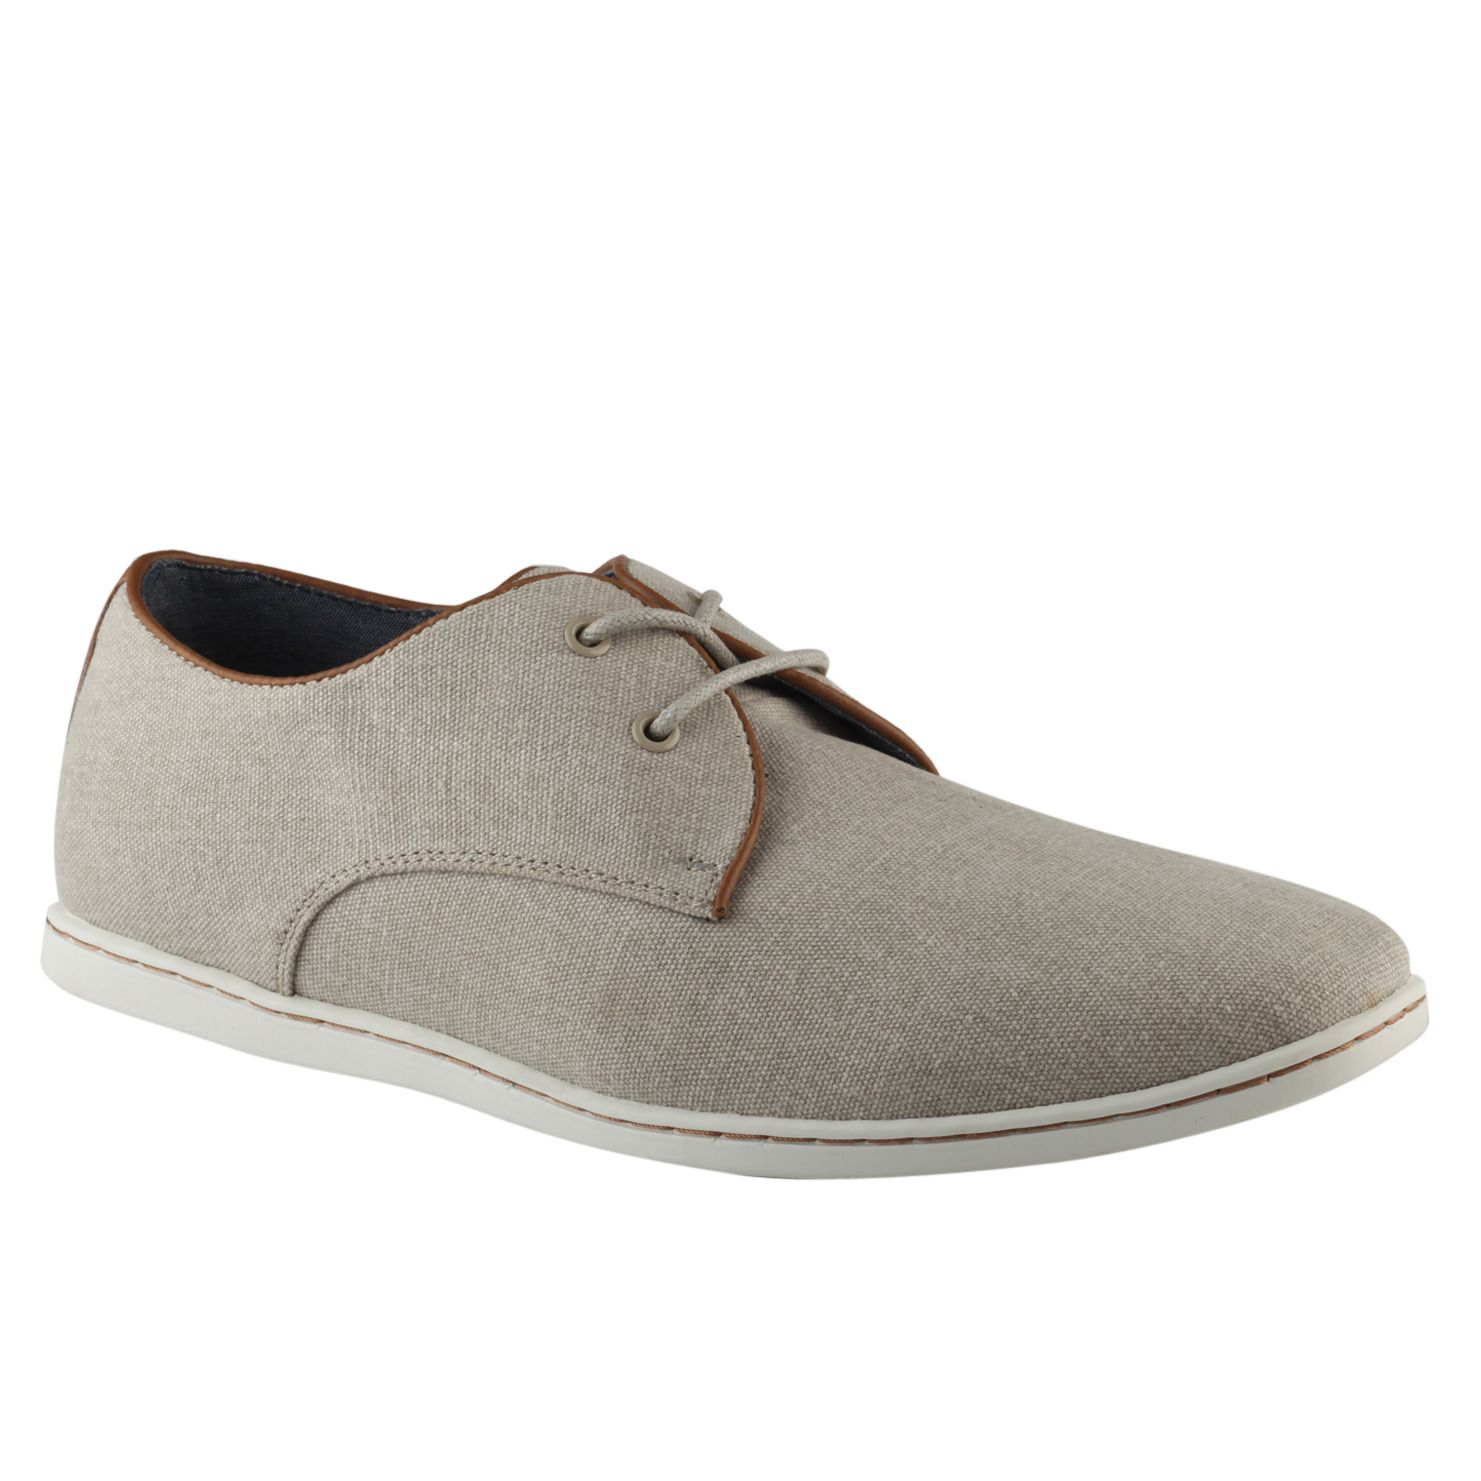 fc35472b ZACHARIAH - men's casual lace-ups shoes for sale at ALDO Shoes. Ropa  Informal